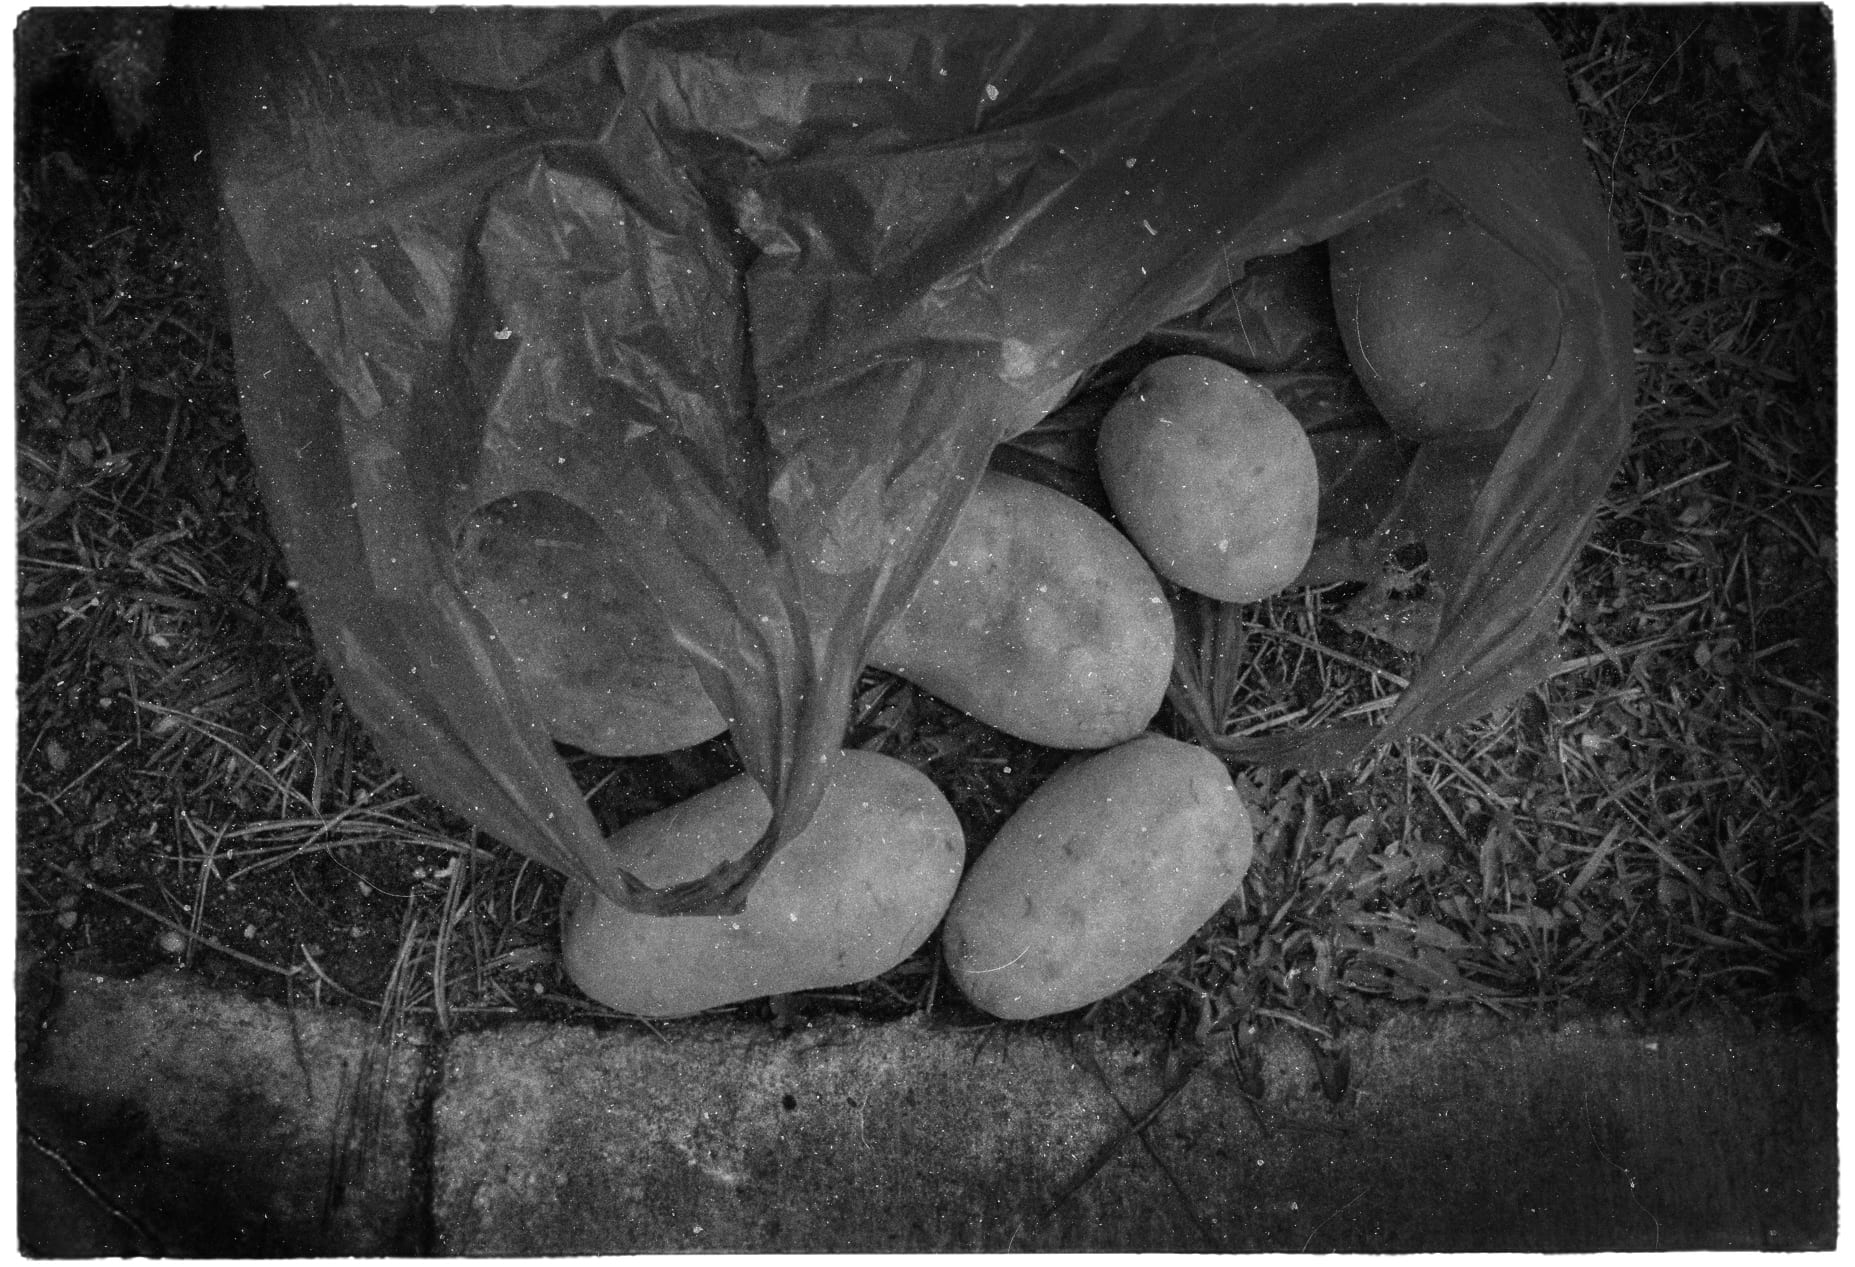 Close up black and white photograph of a spilt bag of potatoes.